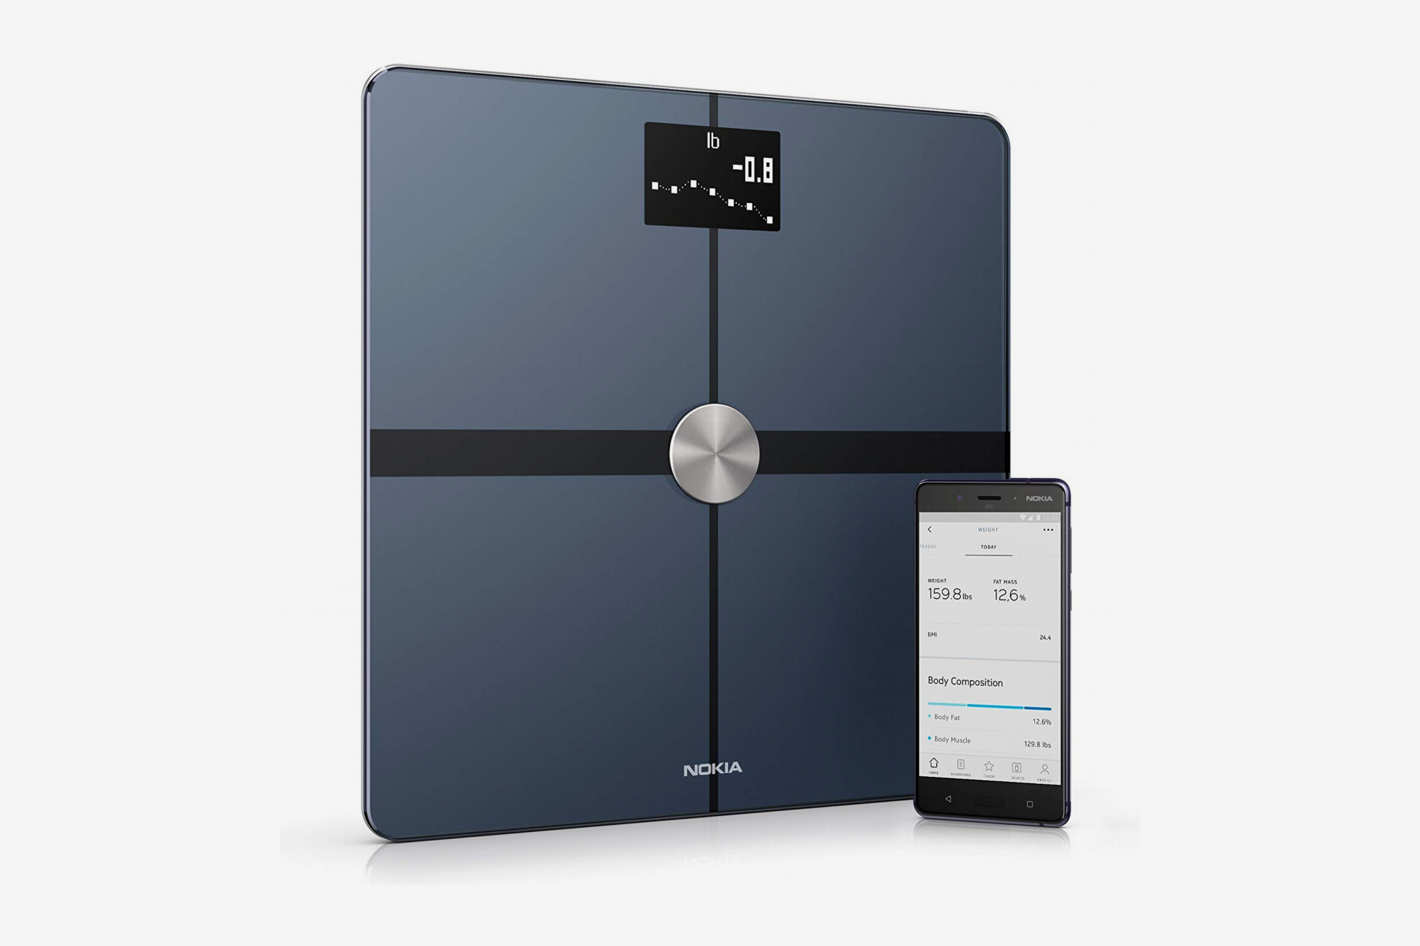 Withings Nokia Body+ Smart Body Composition Wi-Fi Digital Scale